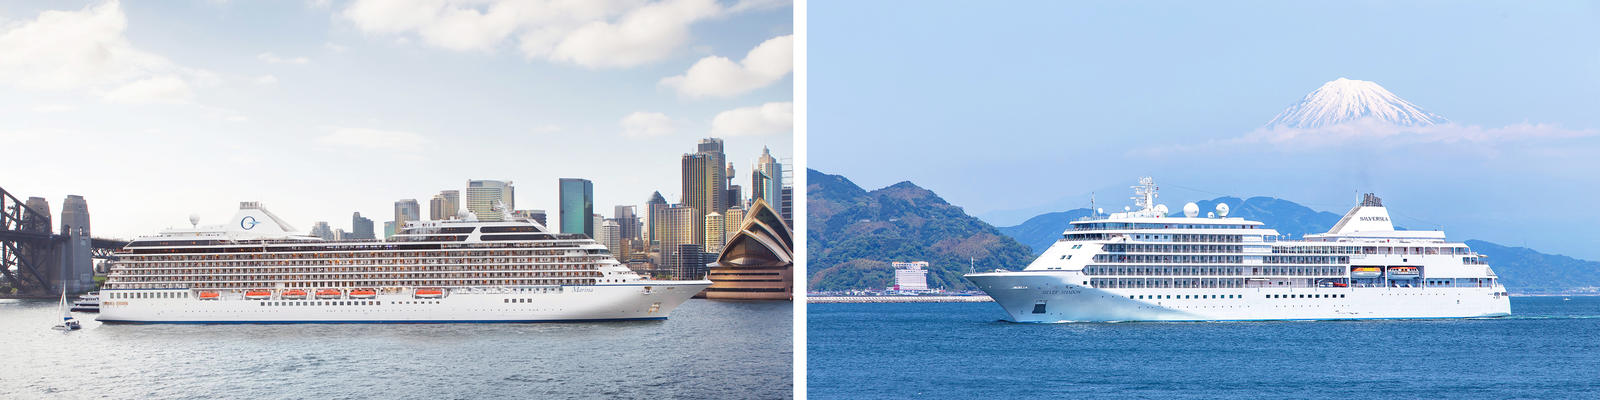 Oceania Cruises vs. Silversea (Photo: Oceania & Silversea)